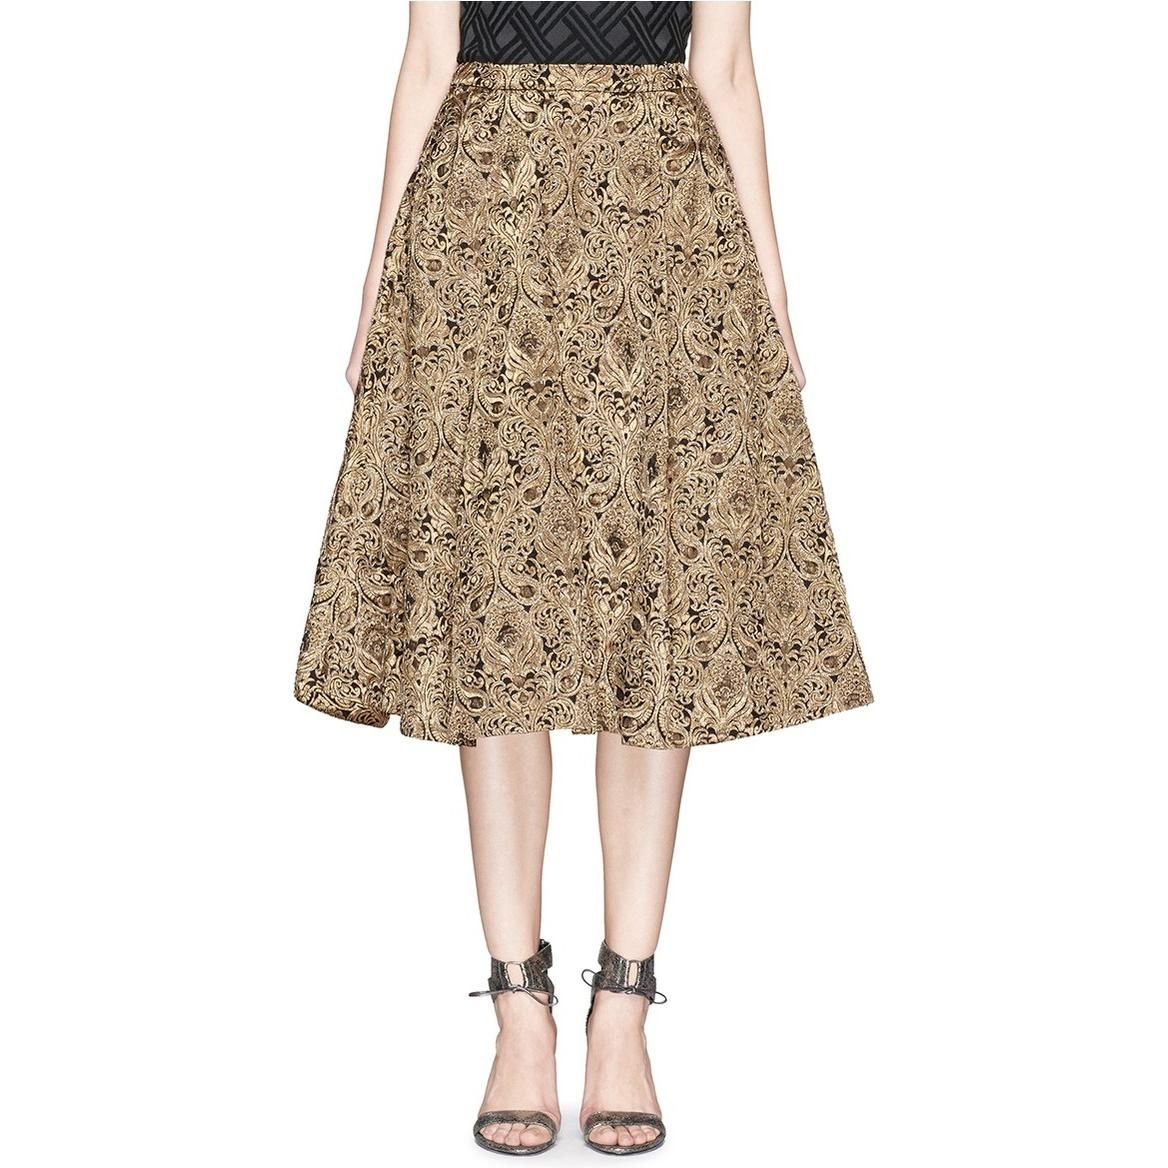 Alice + Olivia Rachelle Beaded Brocade Midi Gown Skirt as seen on Taylor Swift